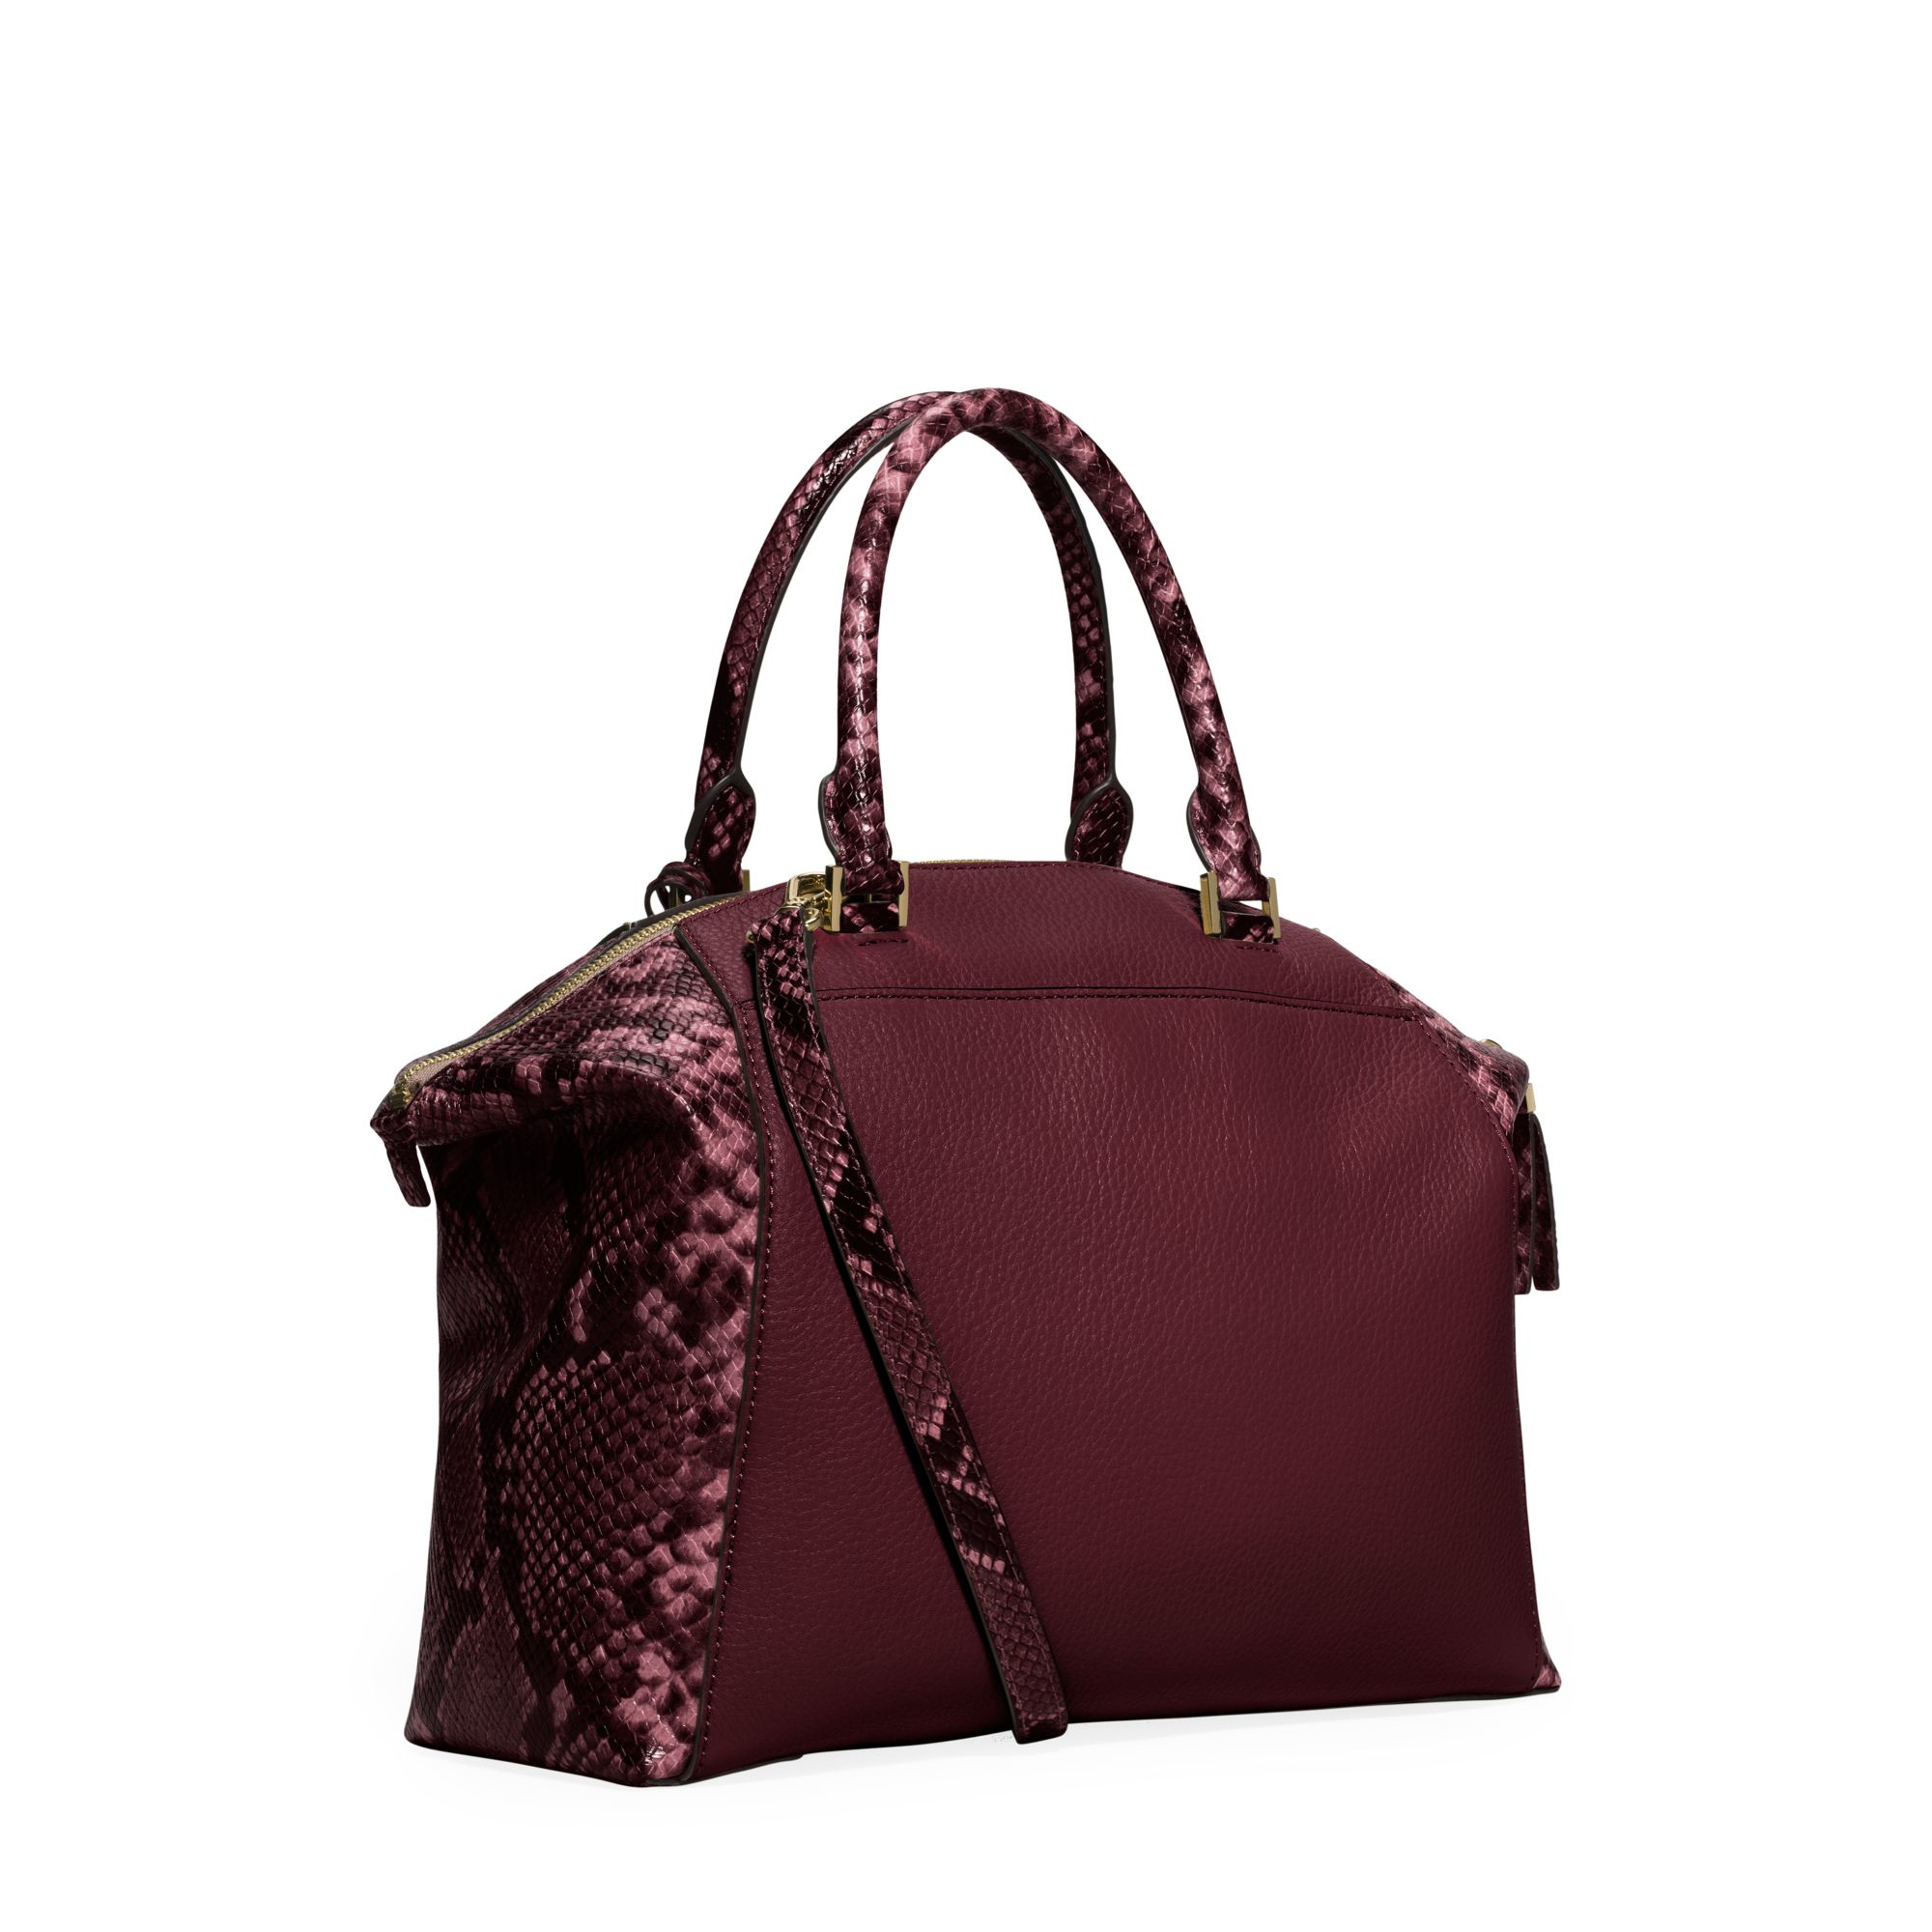 Michael kors Riley Burgundy Python Slough Tote Bag in ...